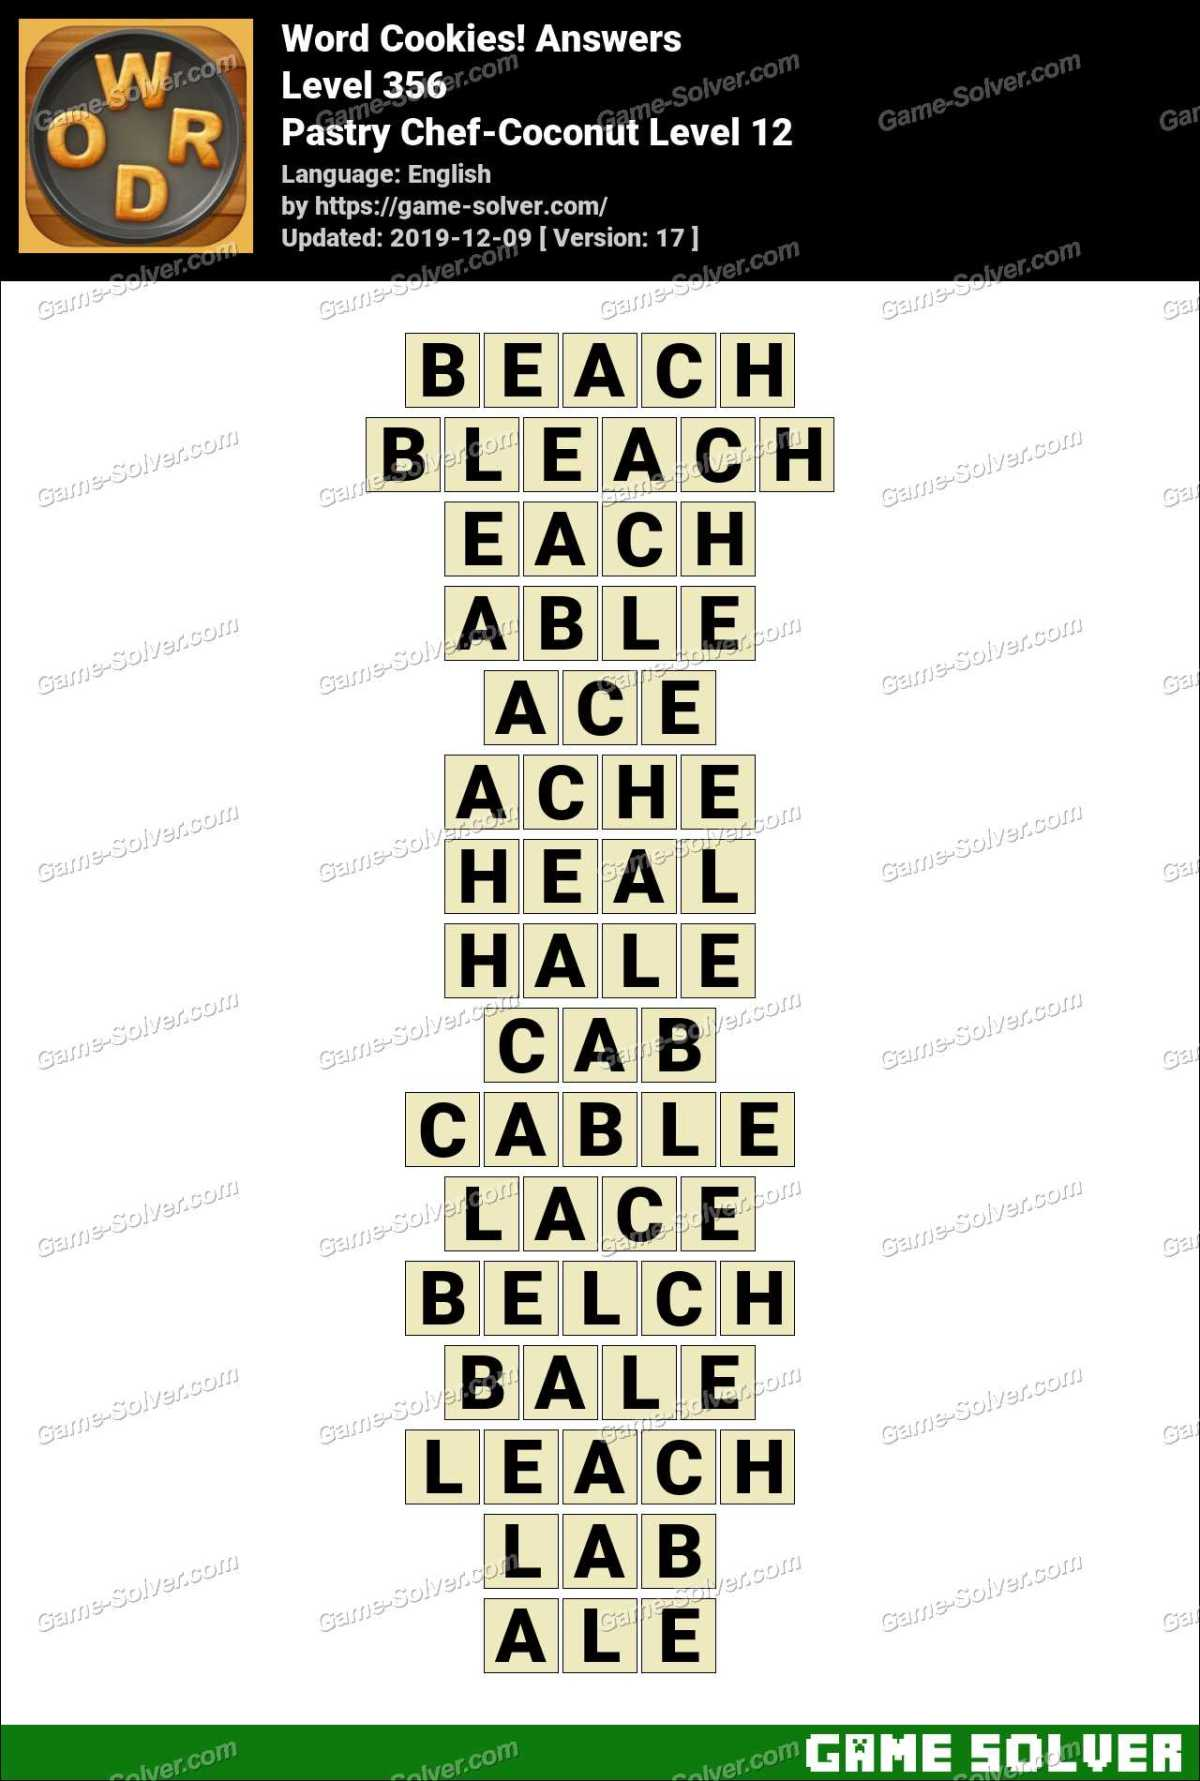 Word Cookies Pastry Chef Coconut Level 12 Answers Game Solver